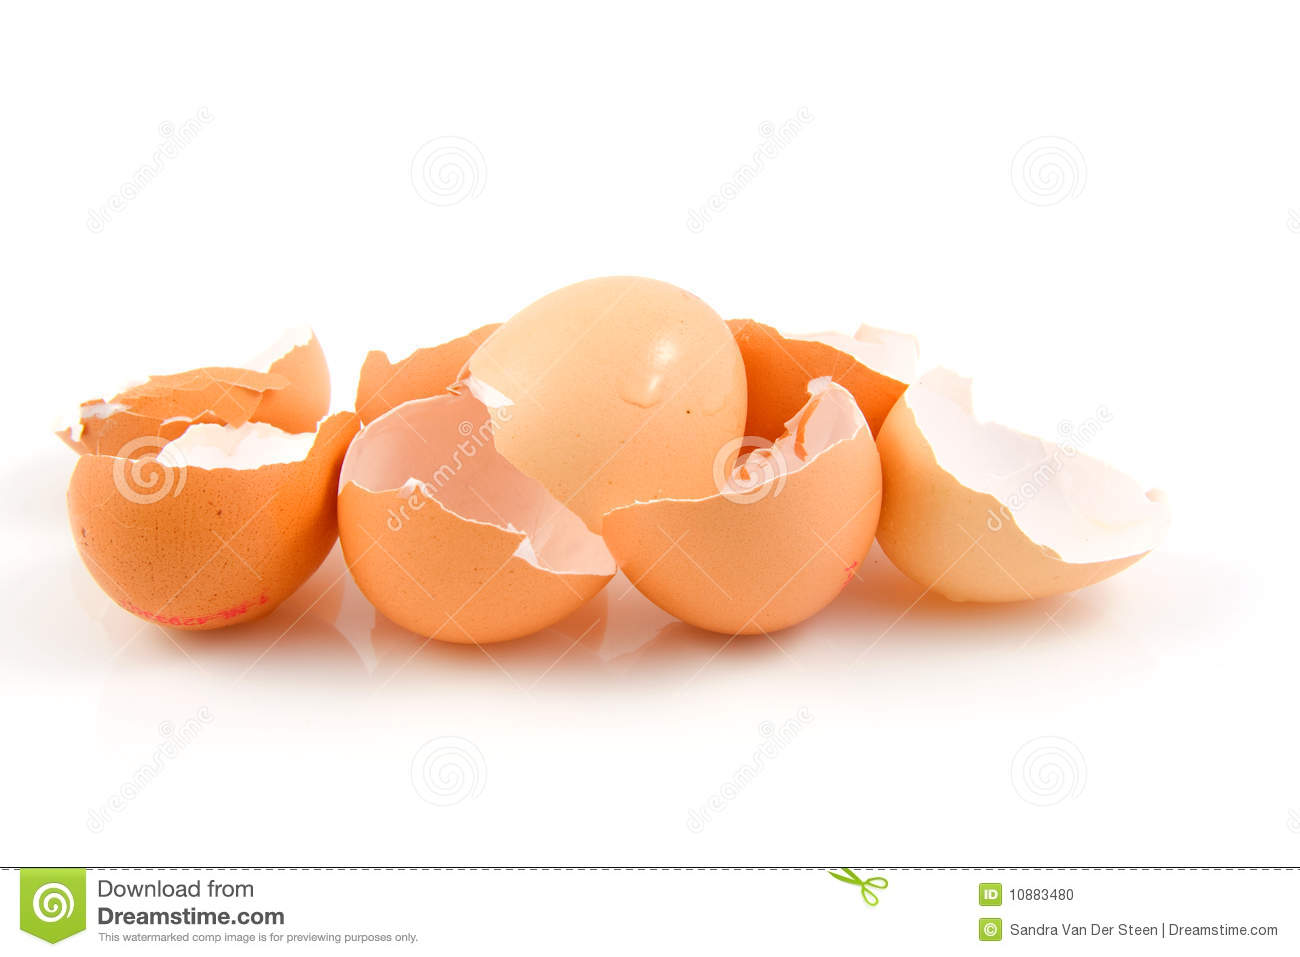 Lots of broken egg shells